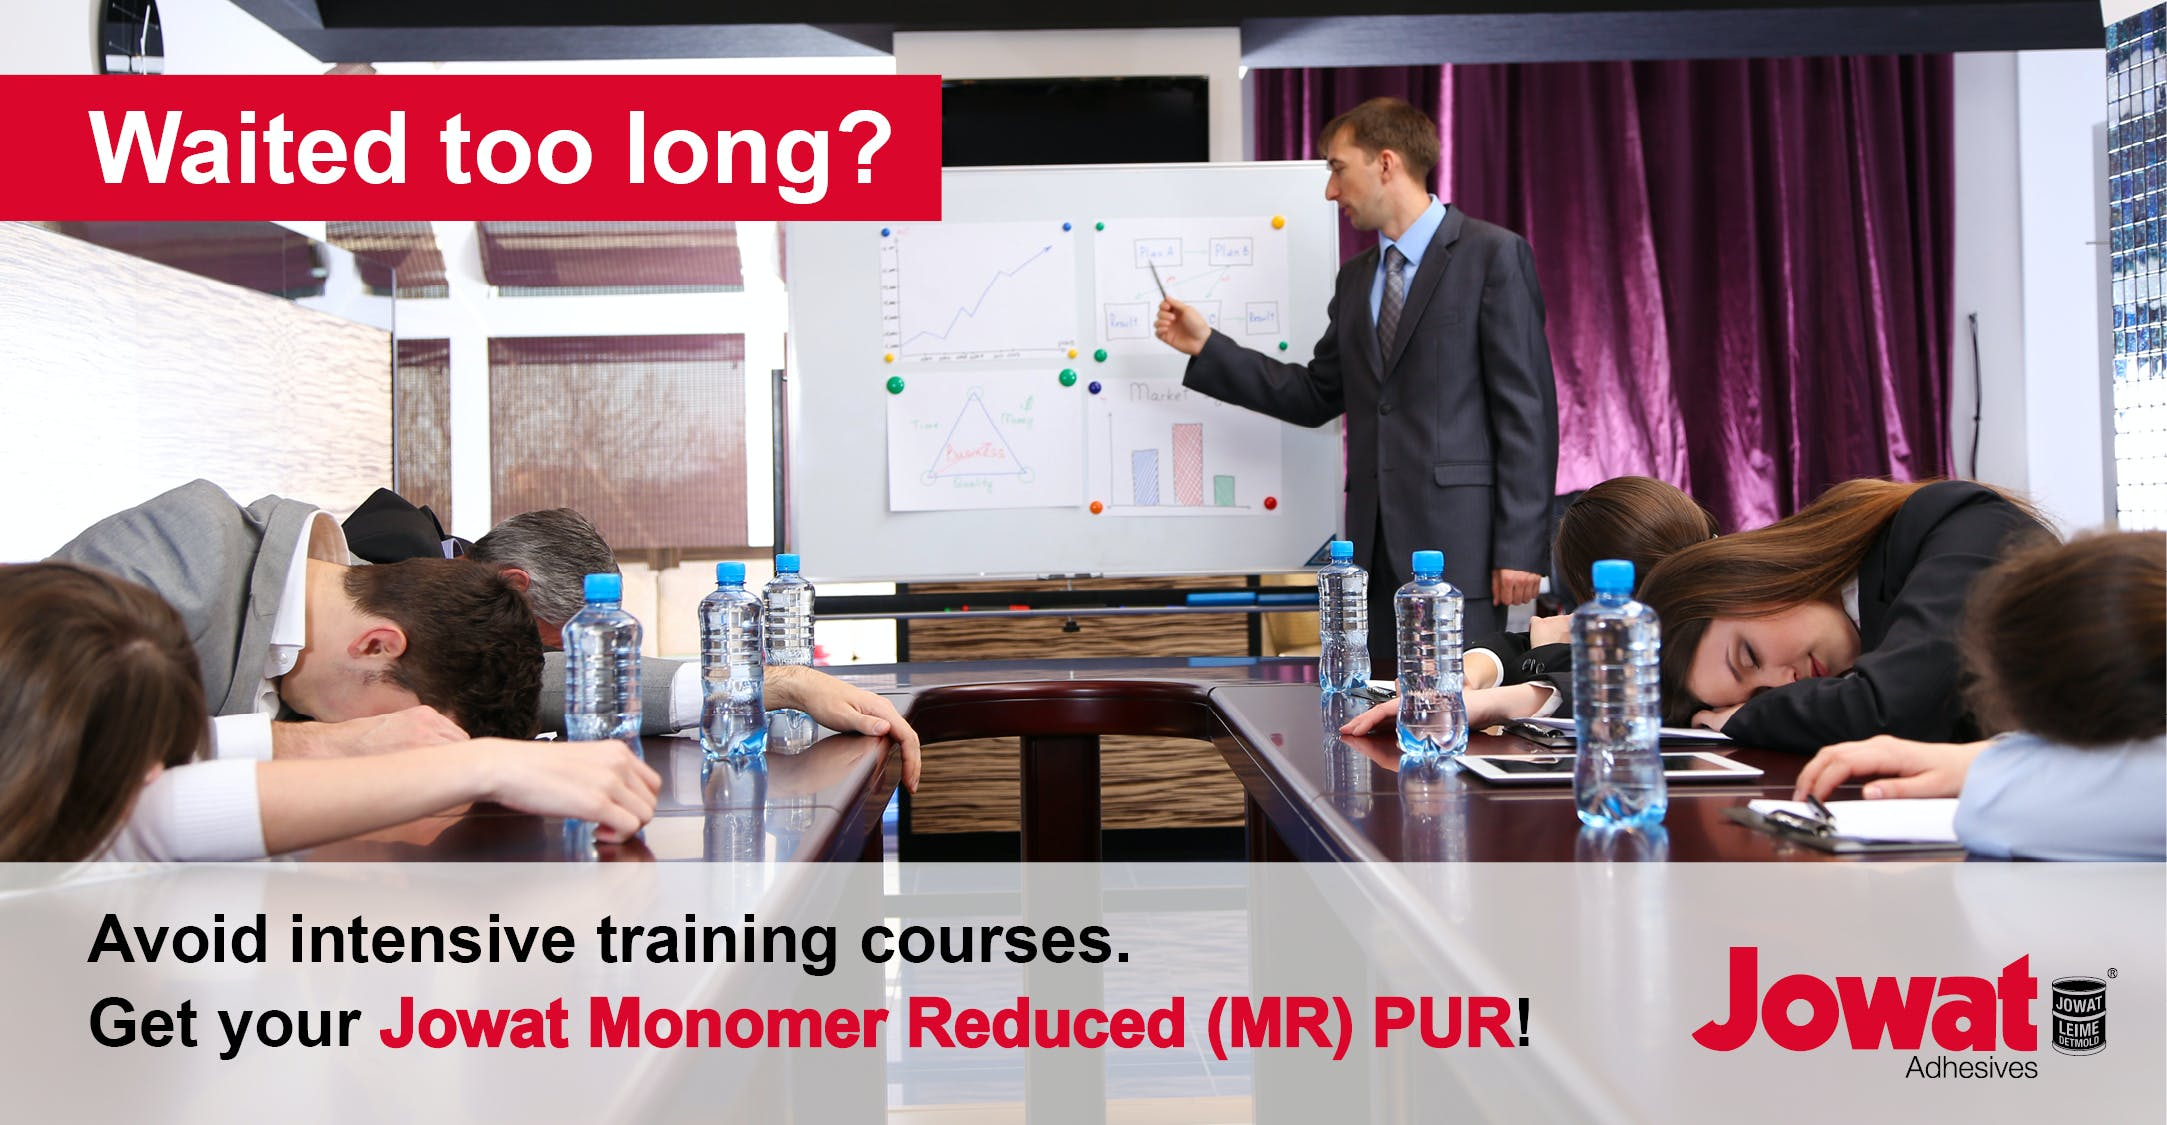 Avoid intensive training courses - get your Jowat Monomer Reduced MR PUR